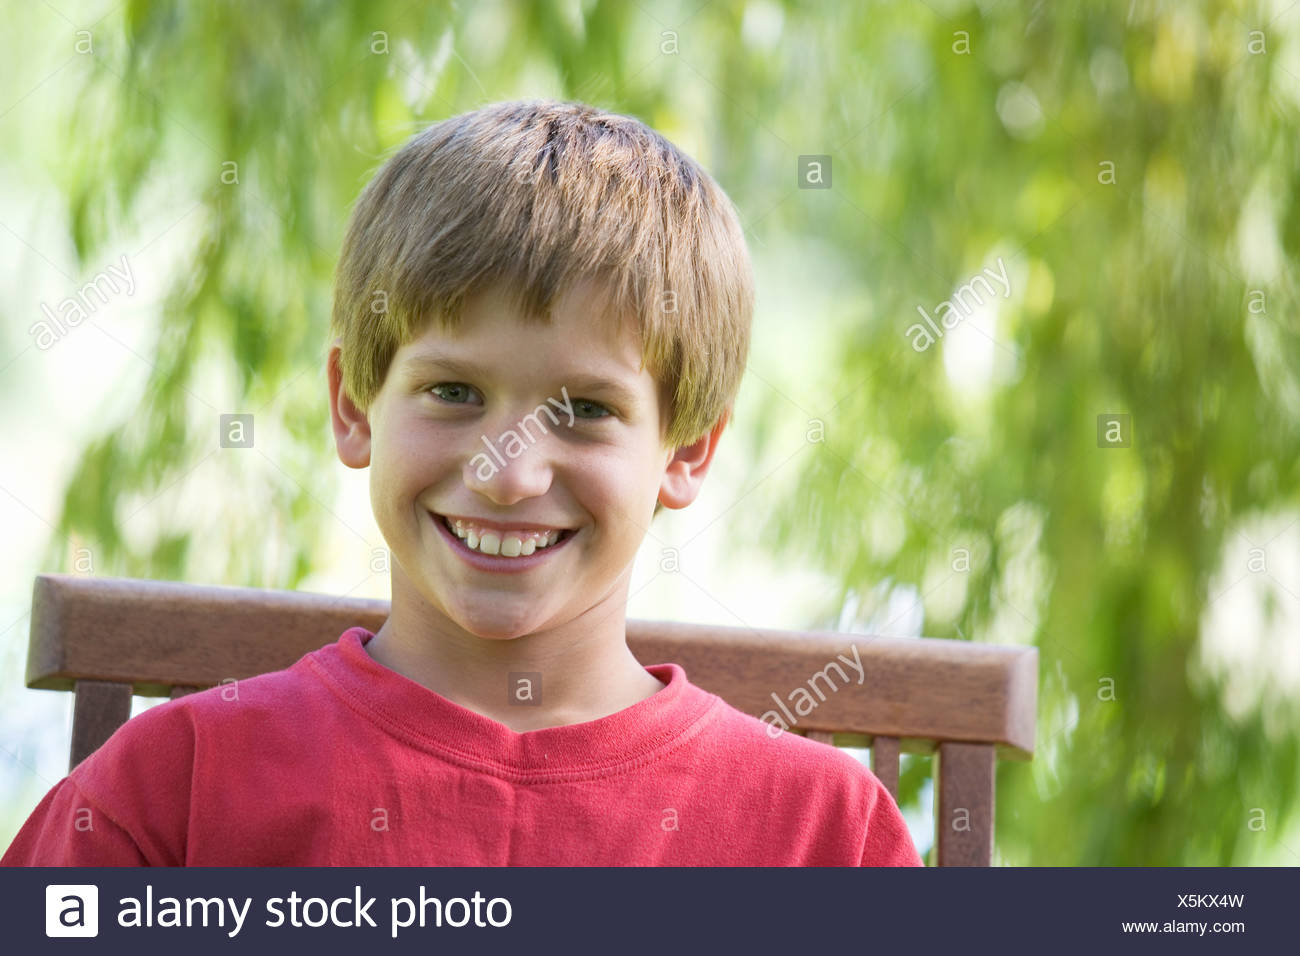 Young boy sitting in a garden chair, close-up - Stock Image